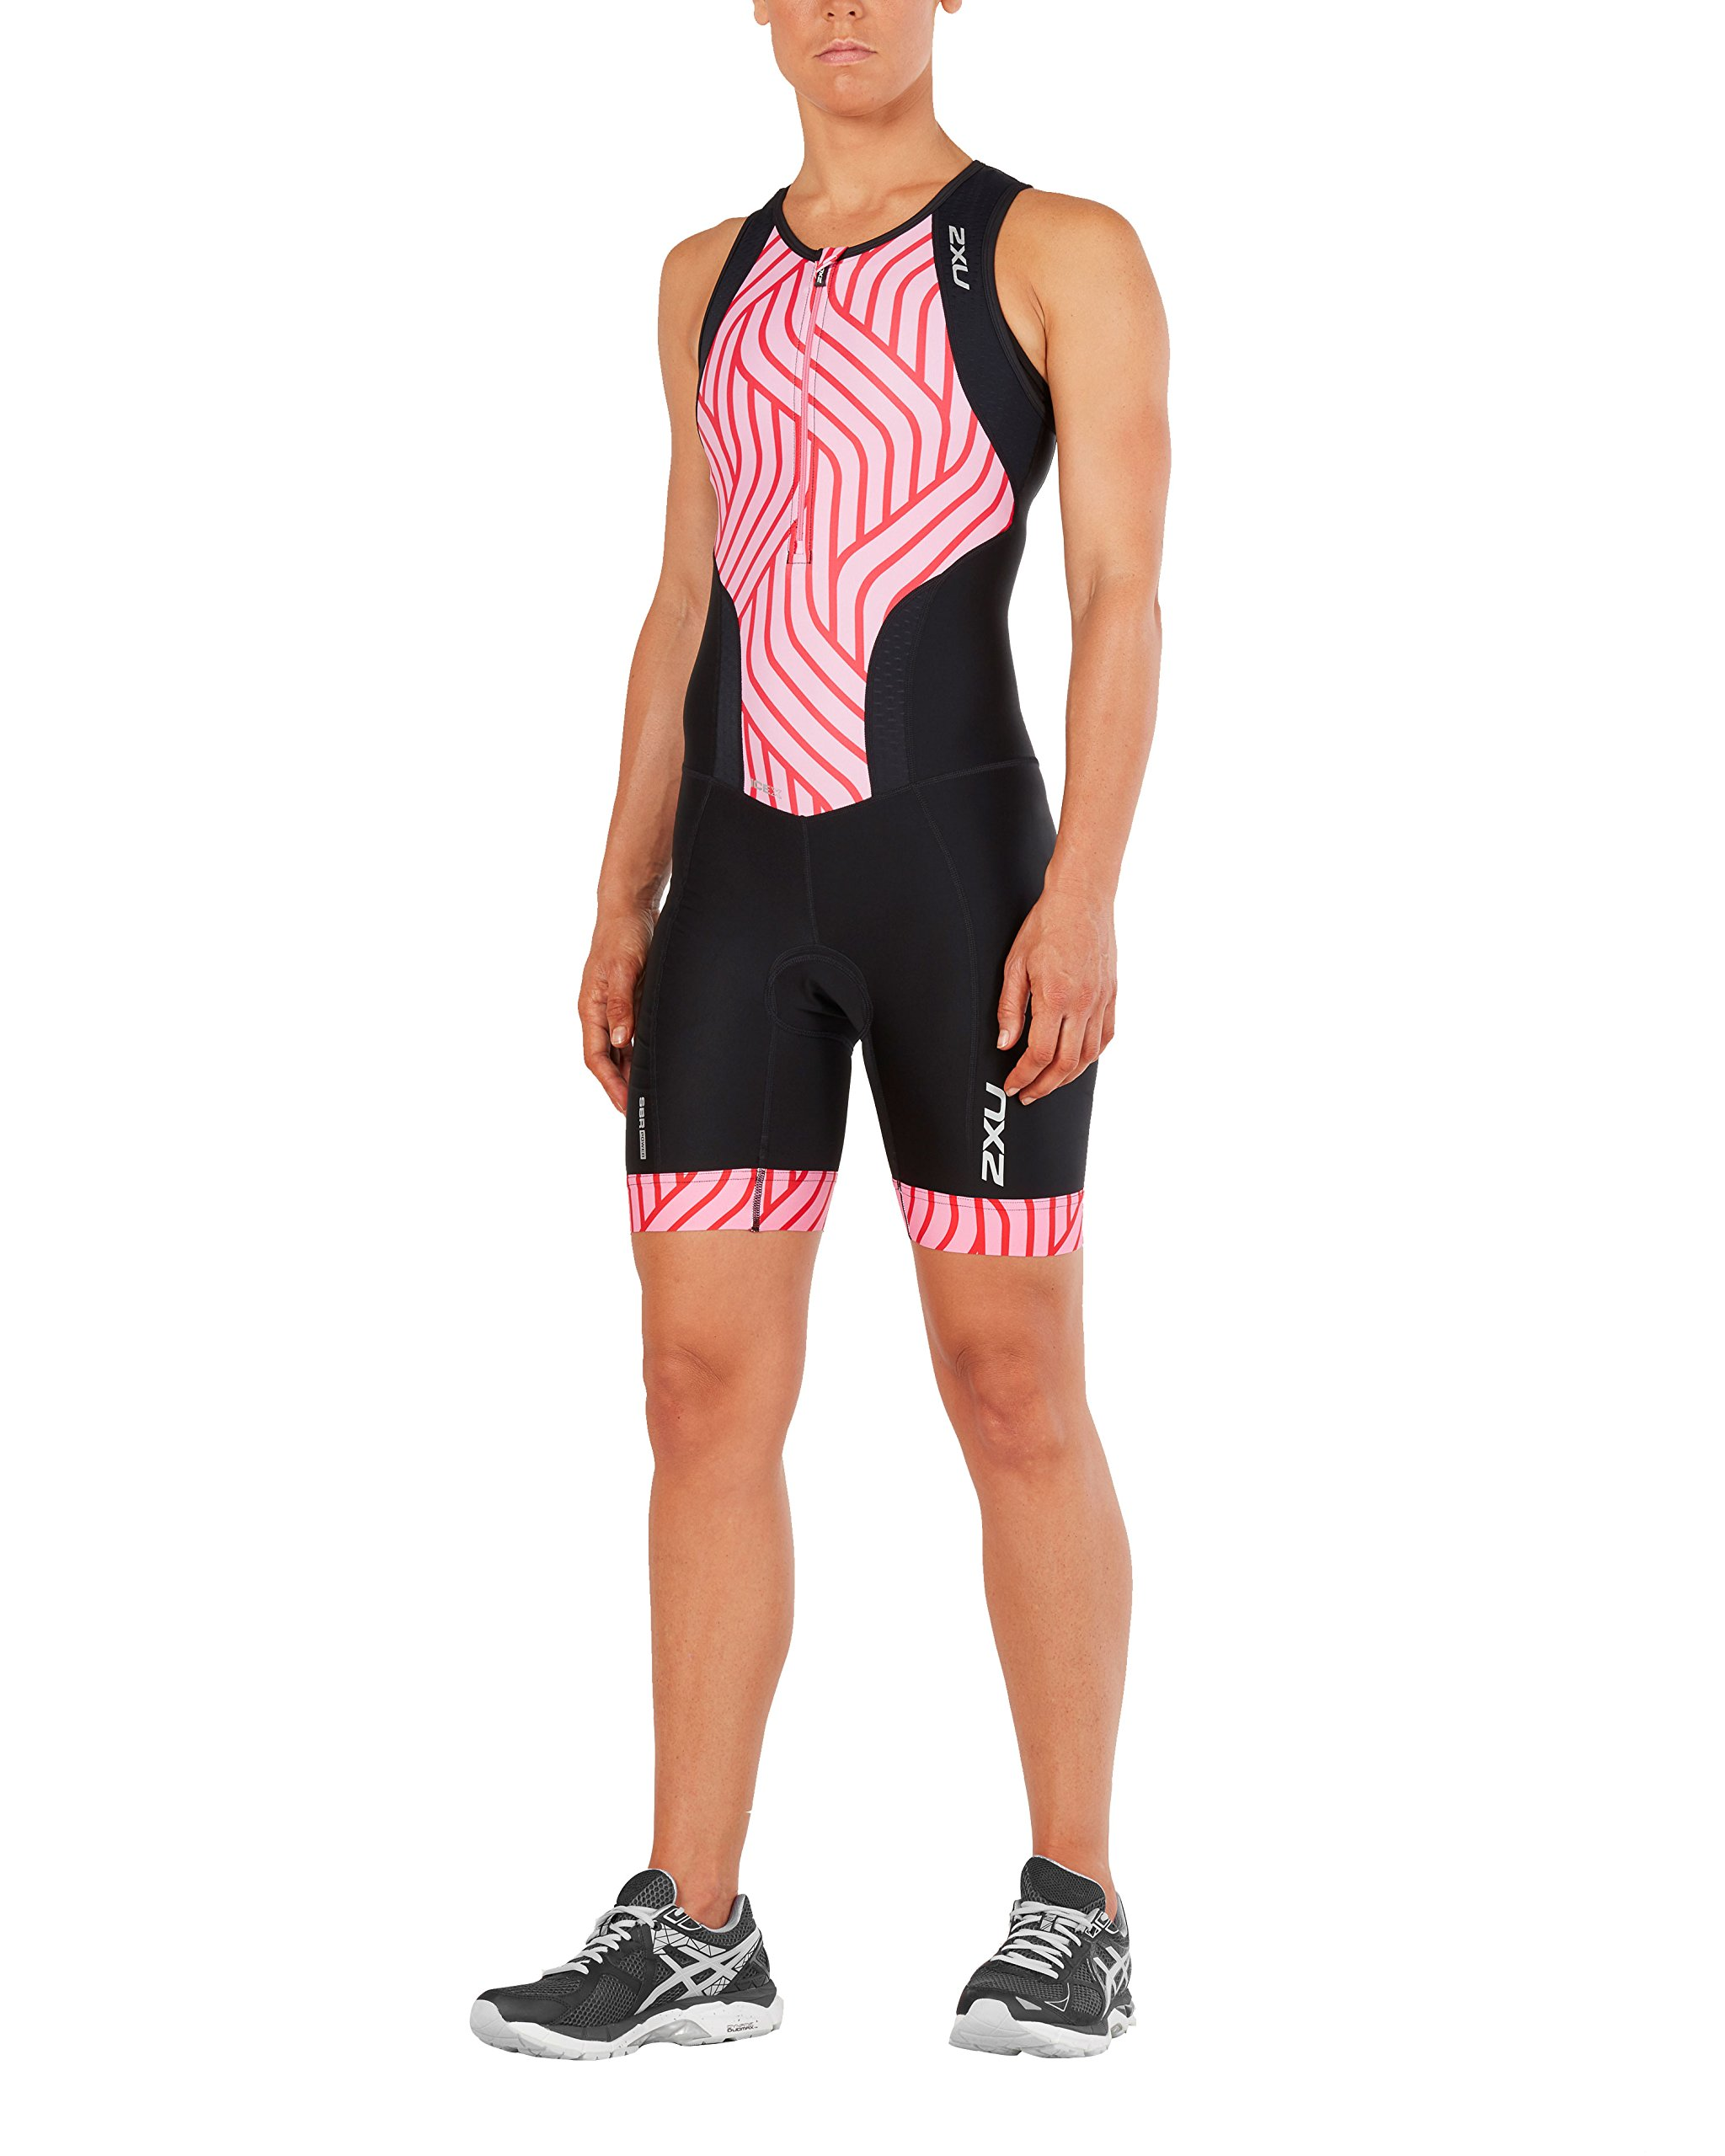 2XU Womens Perform Front Zip Trisuit, Black/Rose Pink Tide, Small